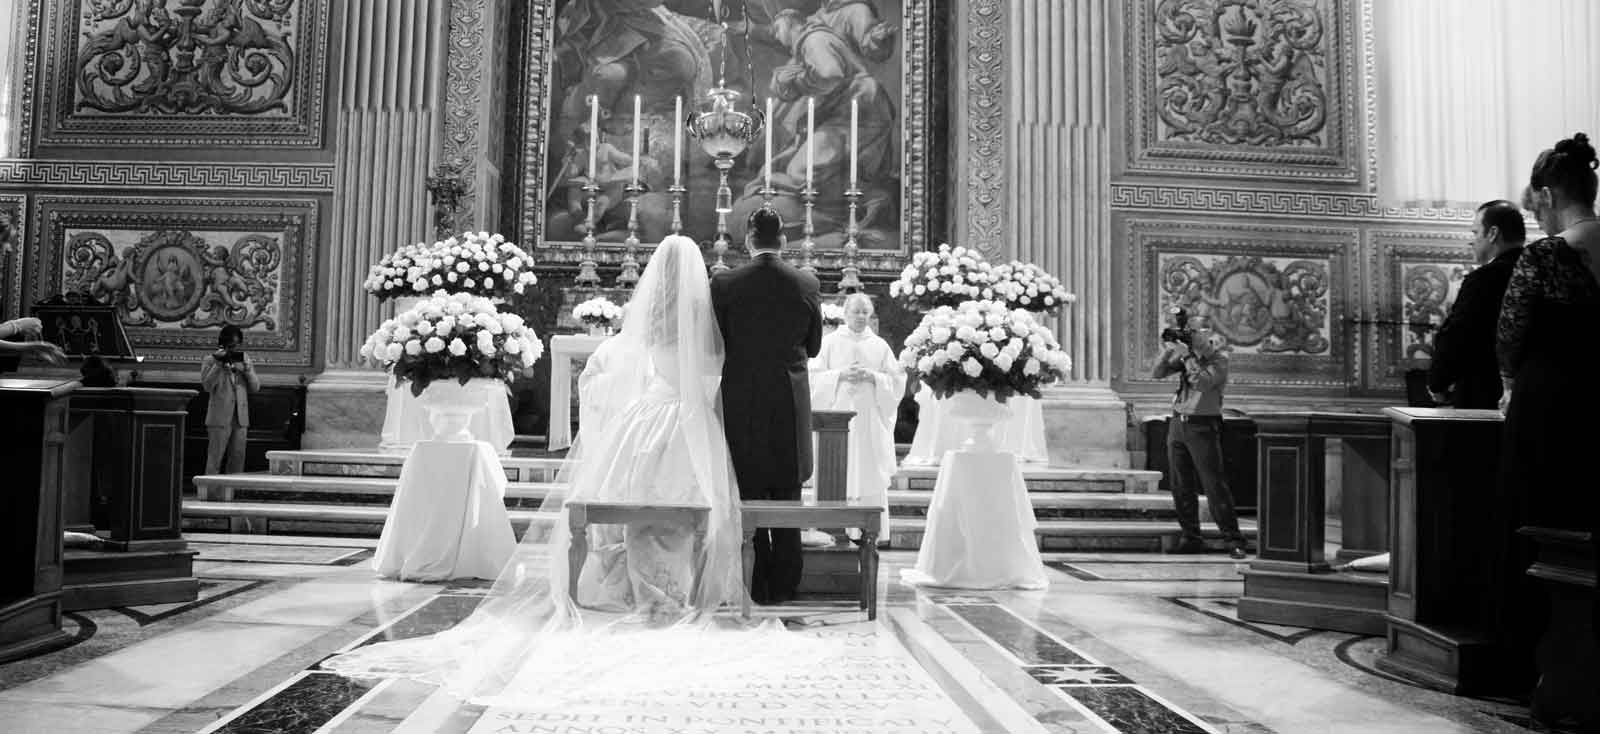 Catholic wedding in Italy